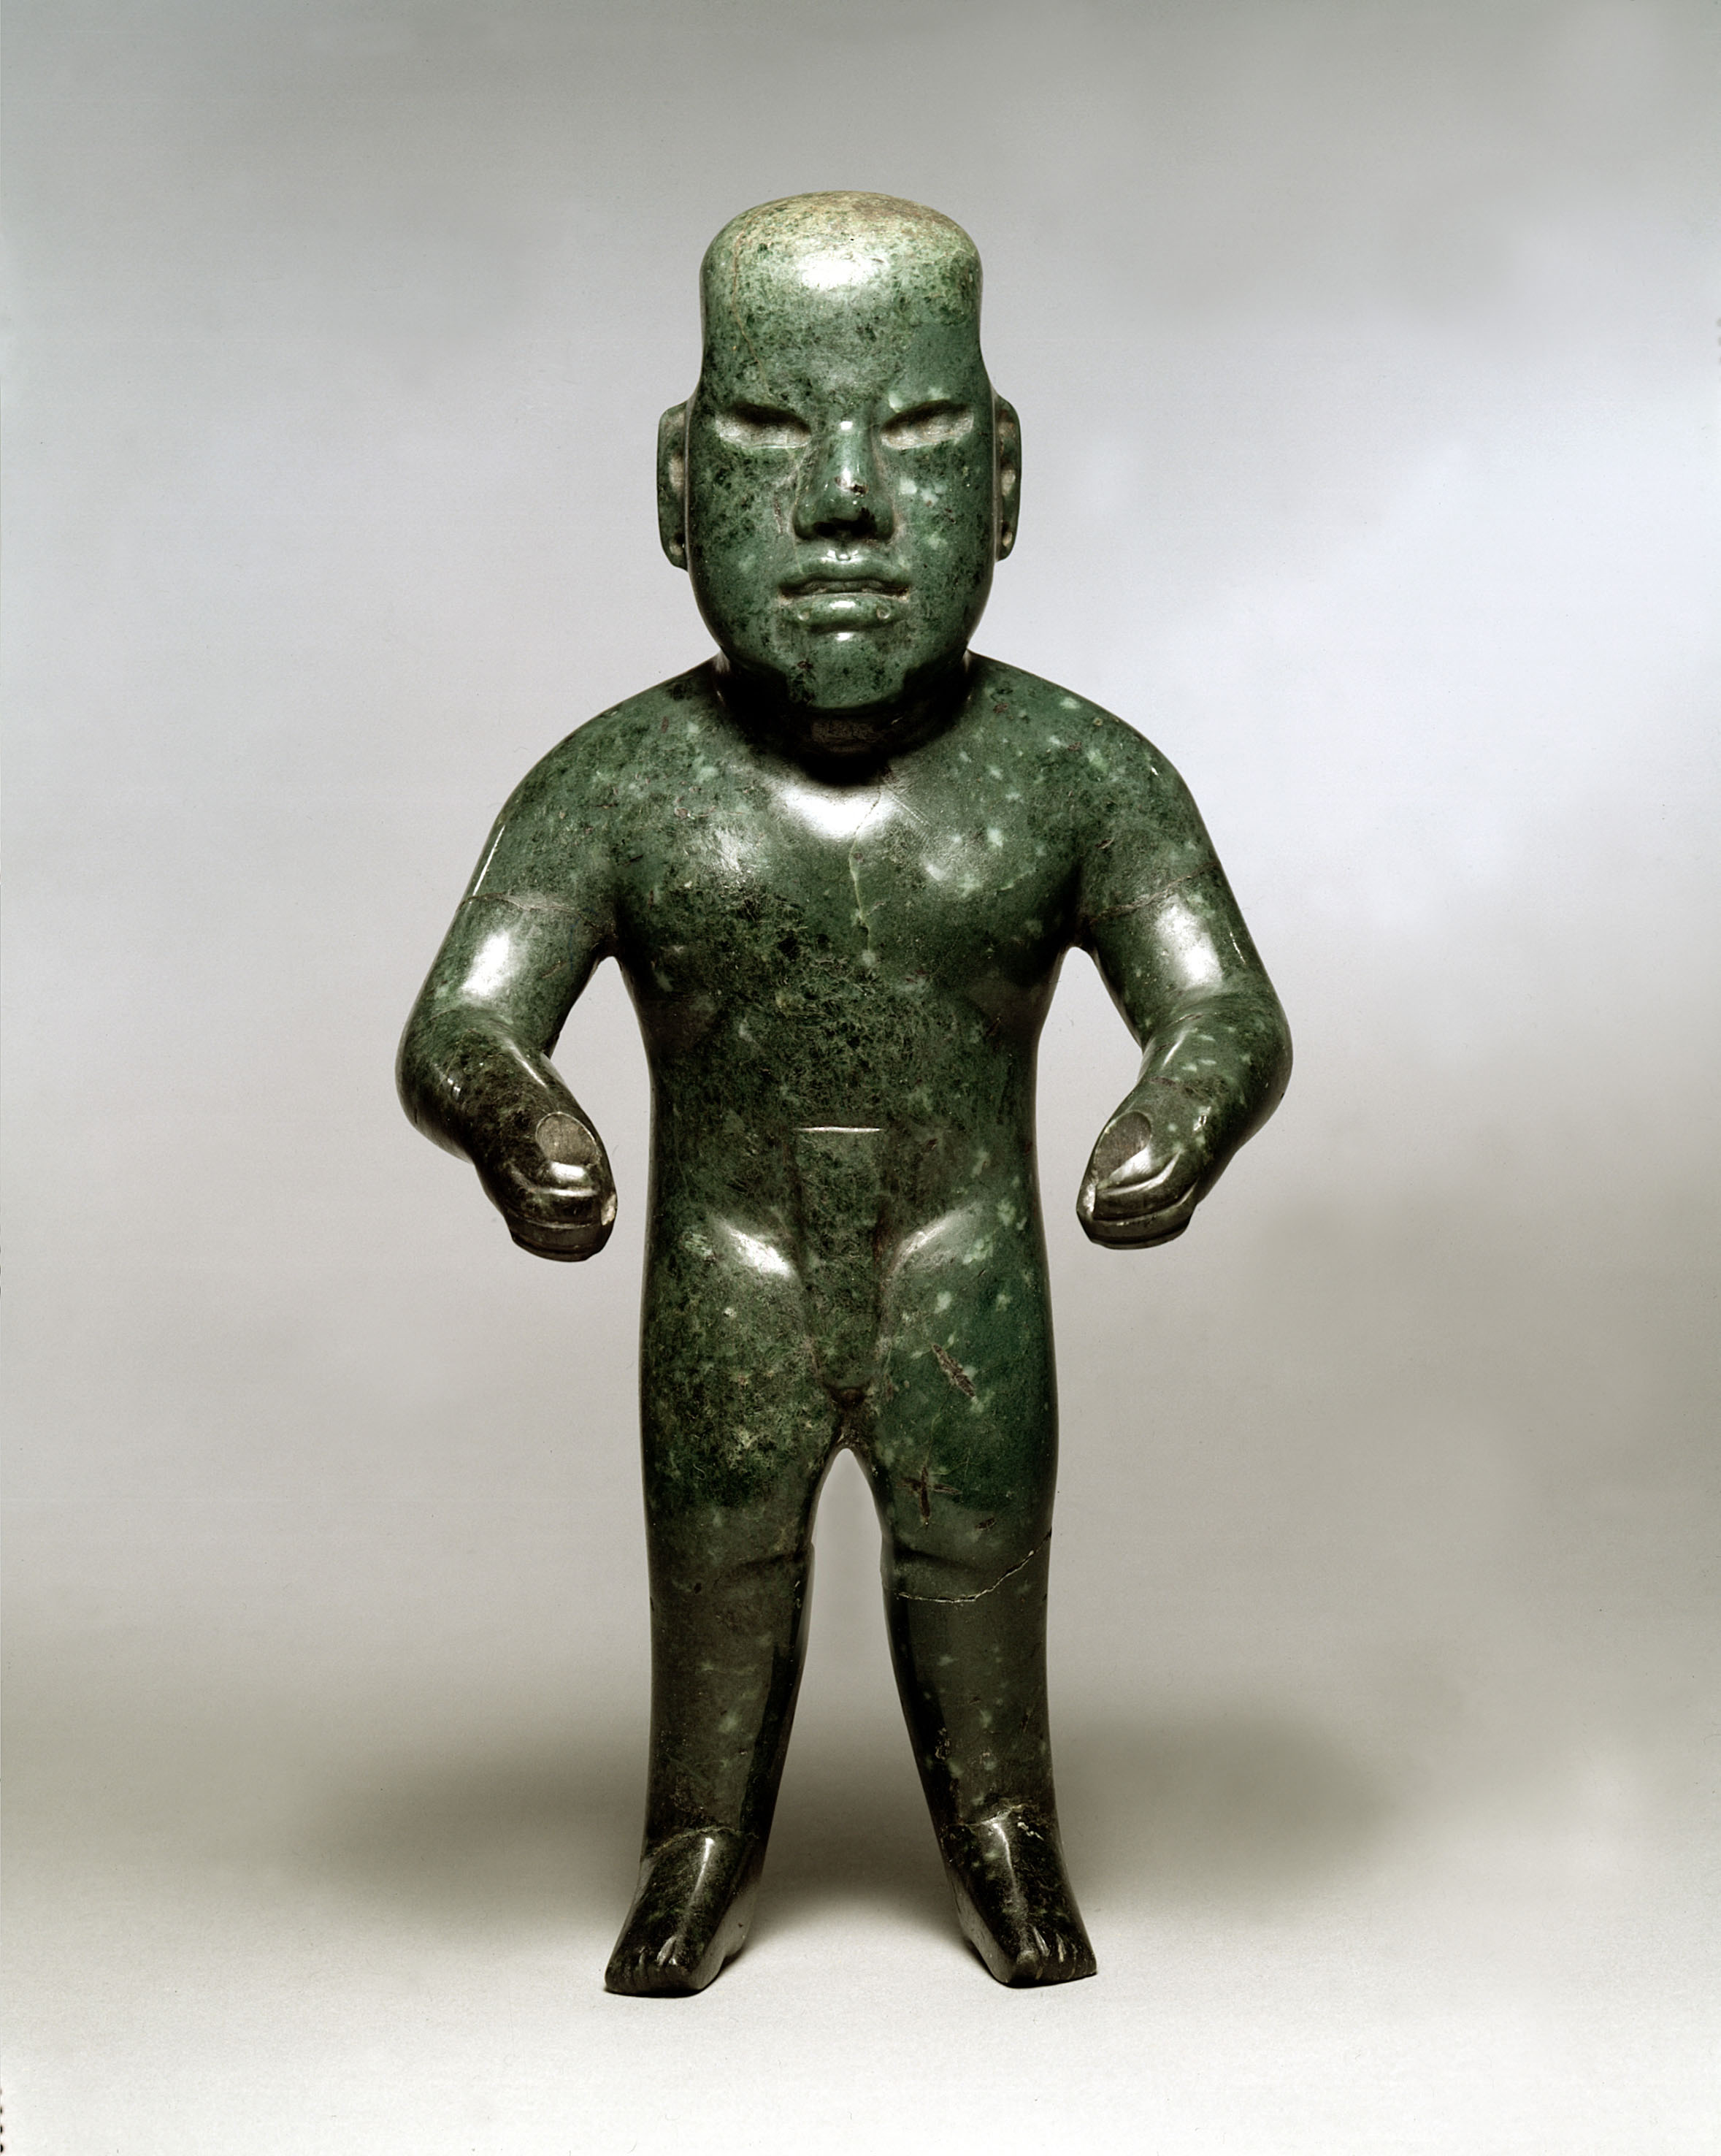 Olmec diopside-jadeite sculpture, an early acquisition by Robert Woods Bliss